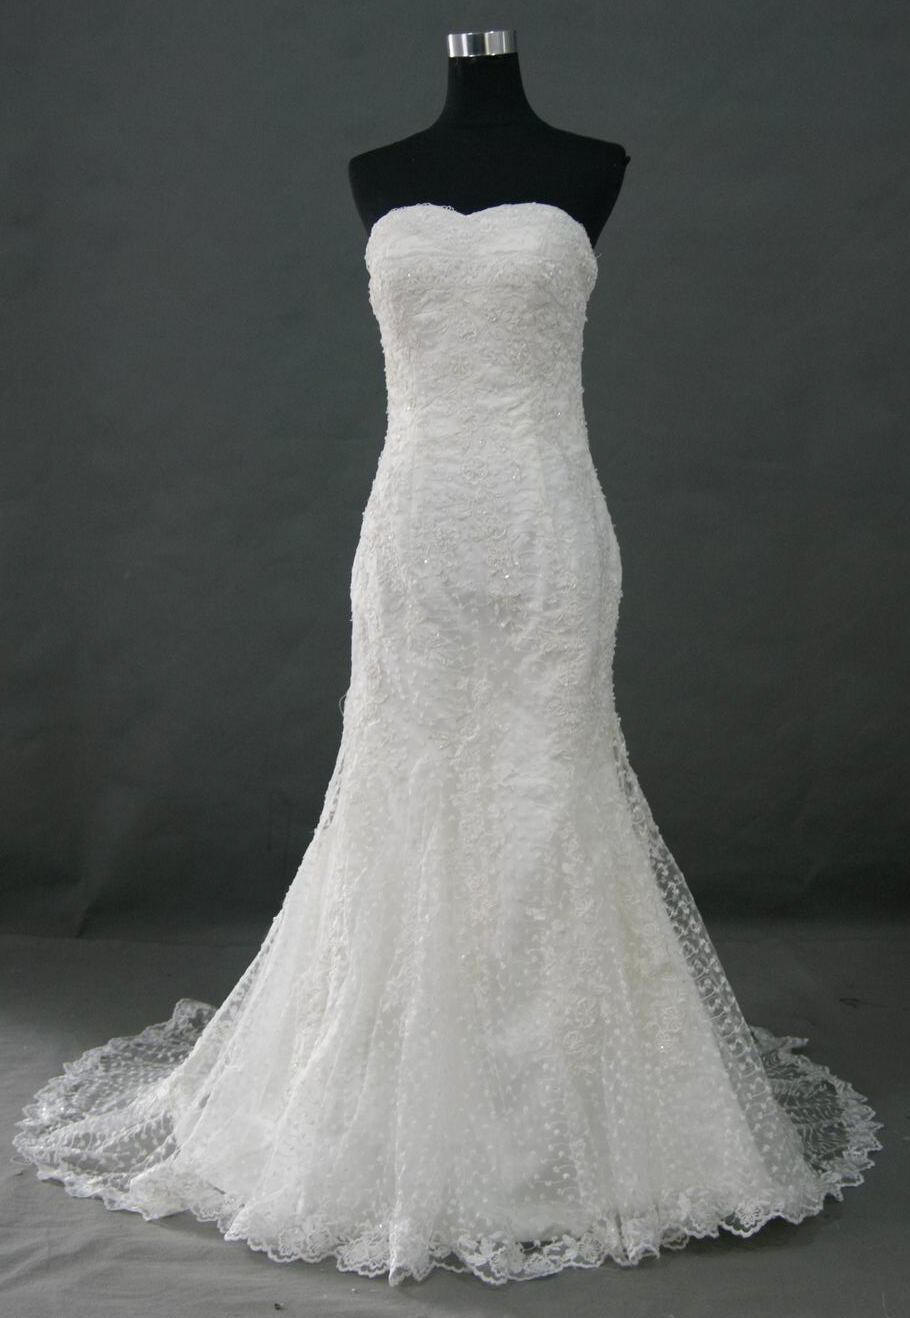 Fitted lace mermaid style wedding gowns.